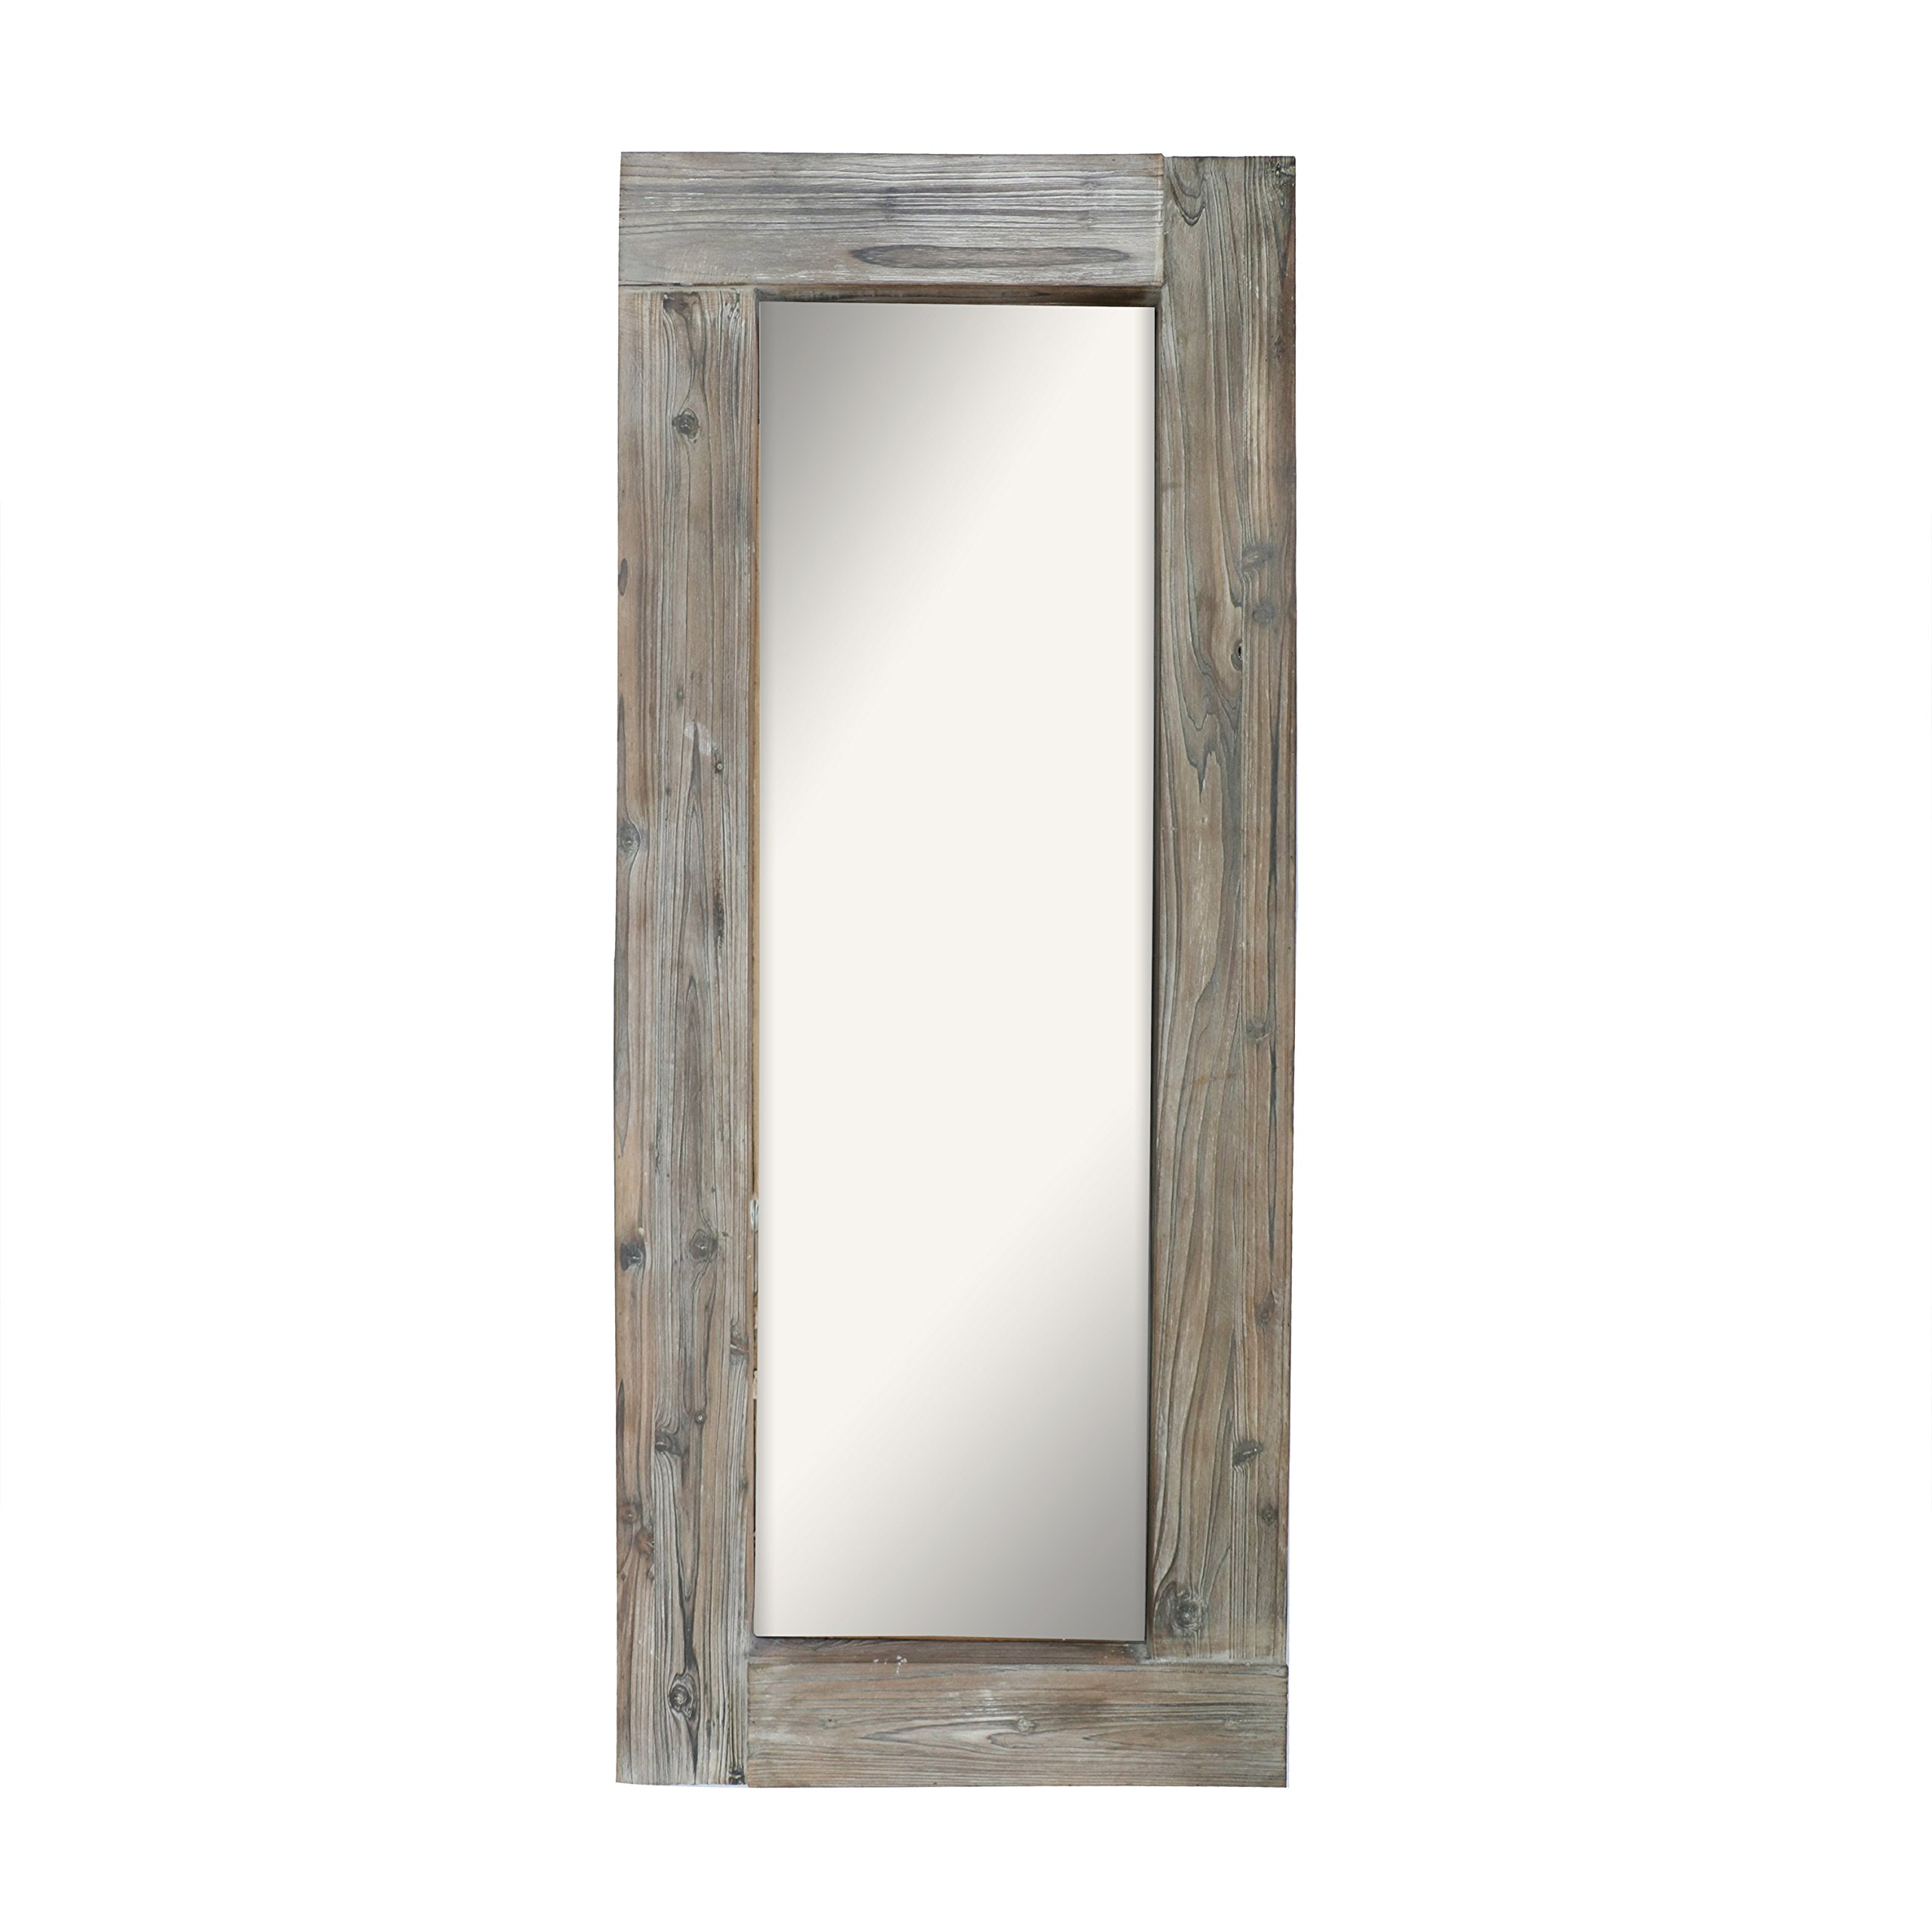 Barnyard Designs Long Decorative Wall Mirror, Rustic Distressed Unfinished Wood Frame, Vertical and Horizontal Hanging Mirror Wall Decor 58'' x 24''